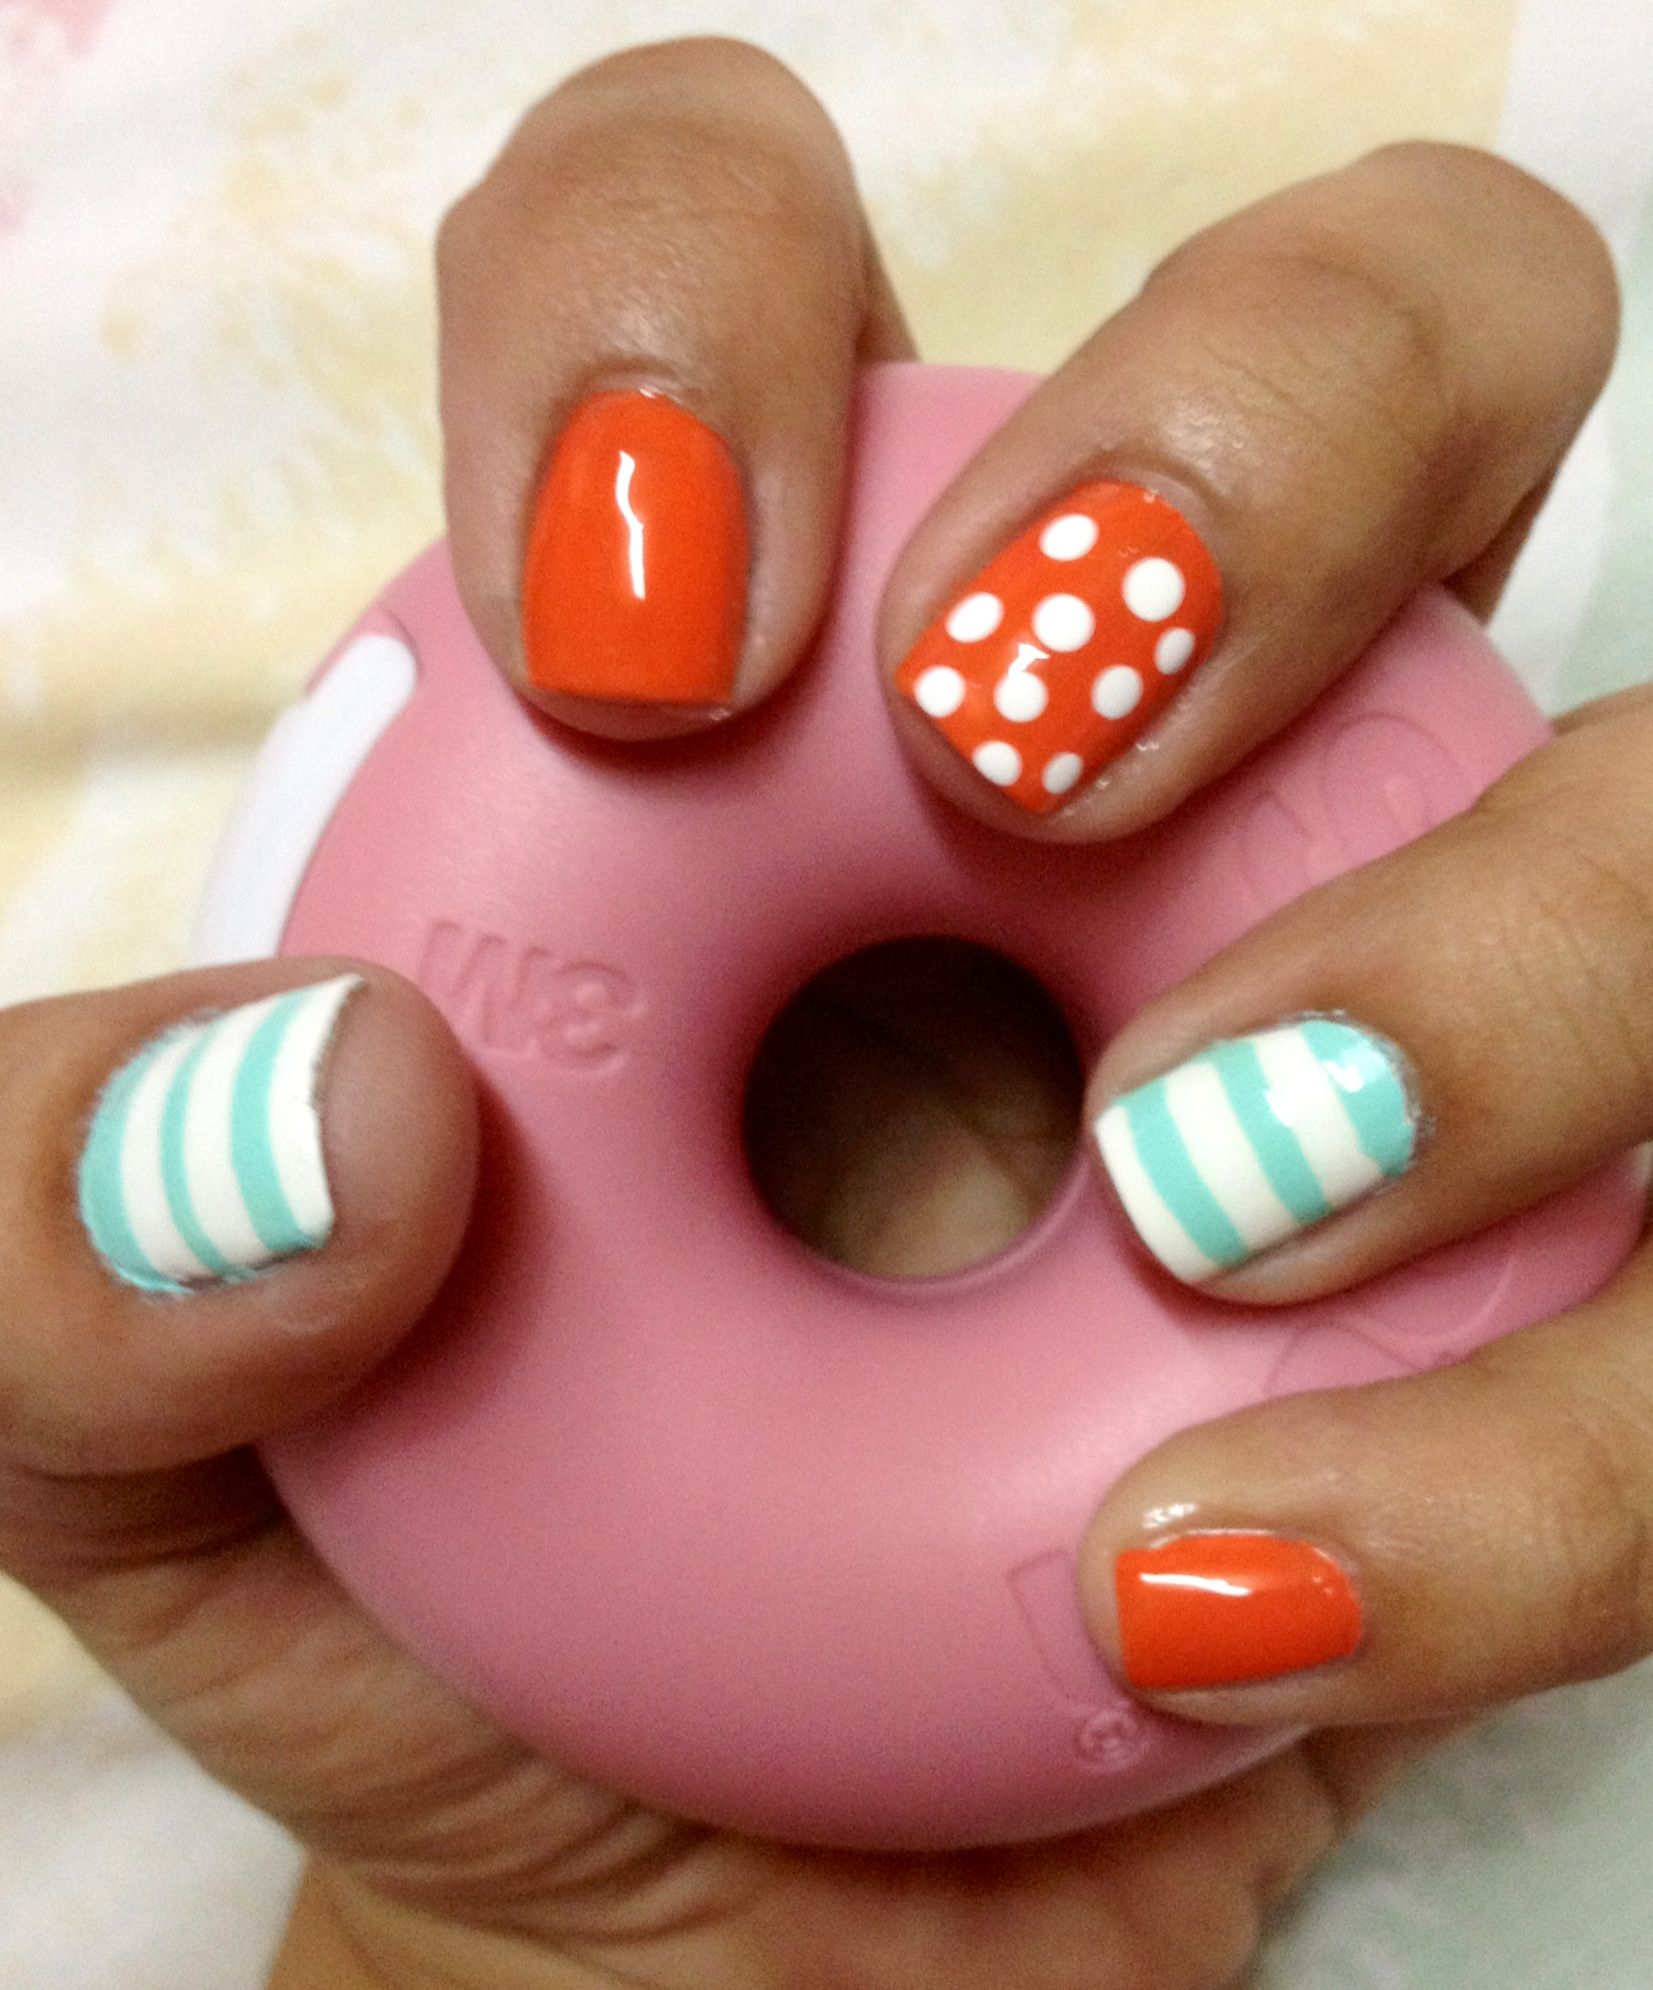 Dots and lines nail art | My Style | Pinterest | Beauty nails